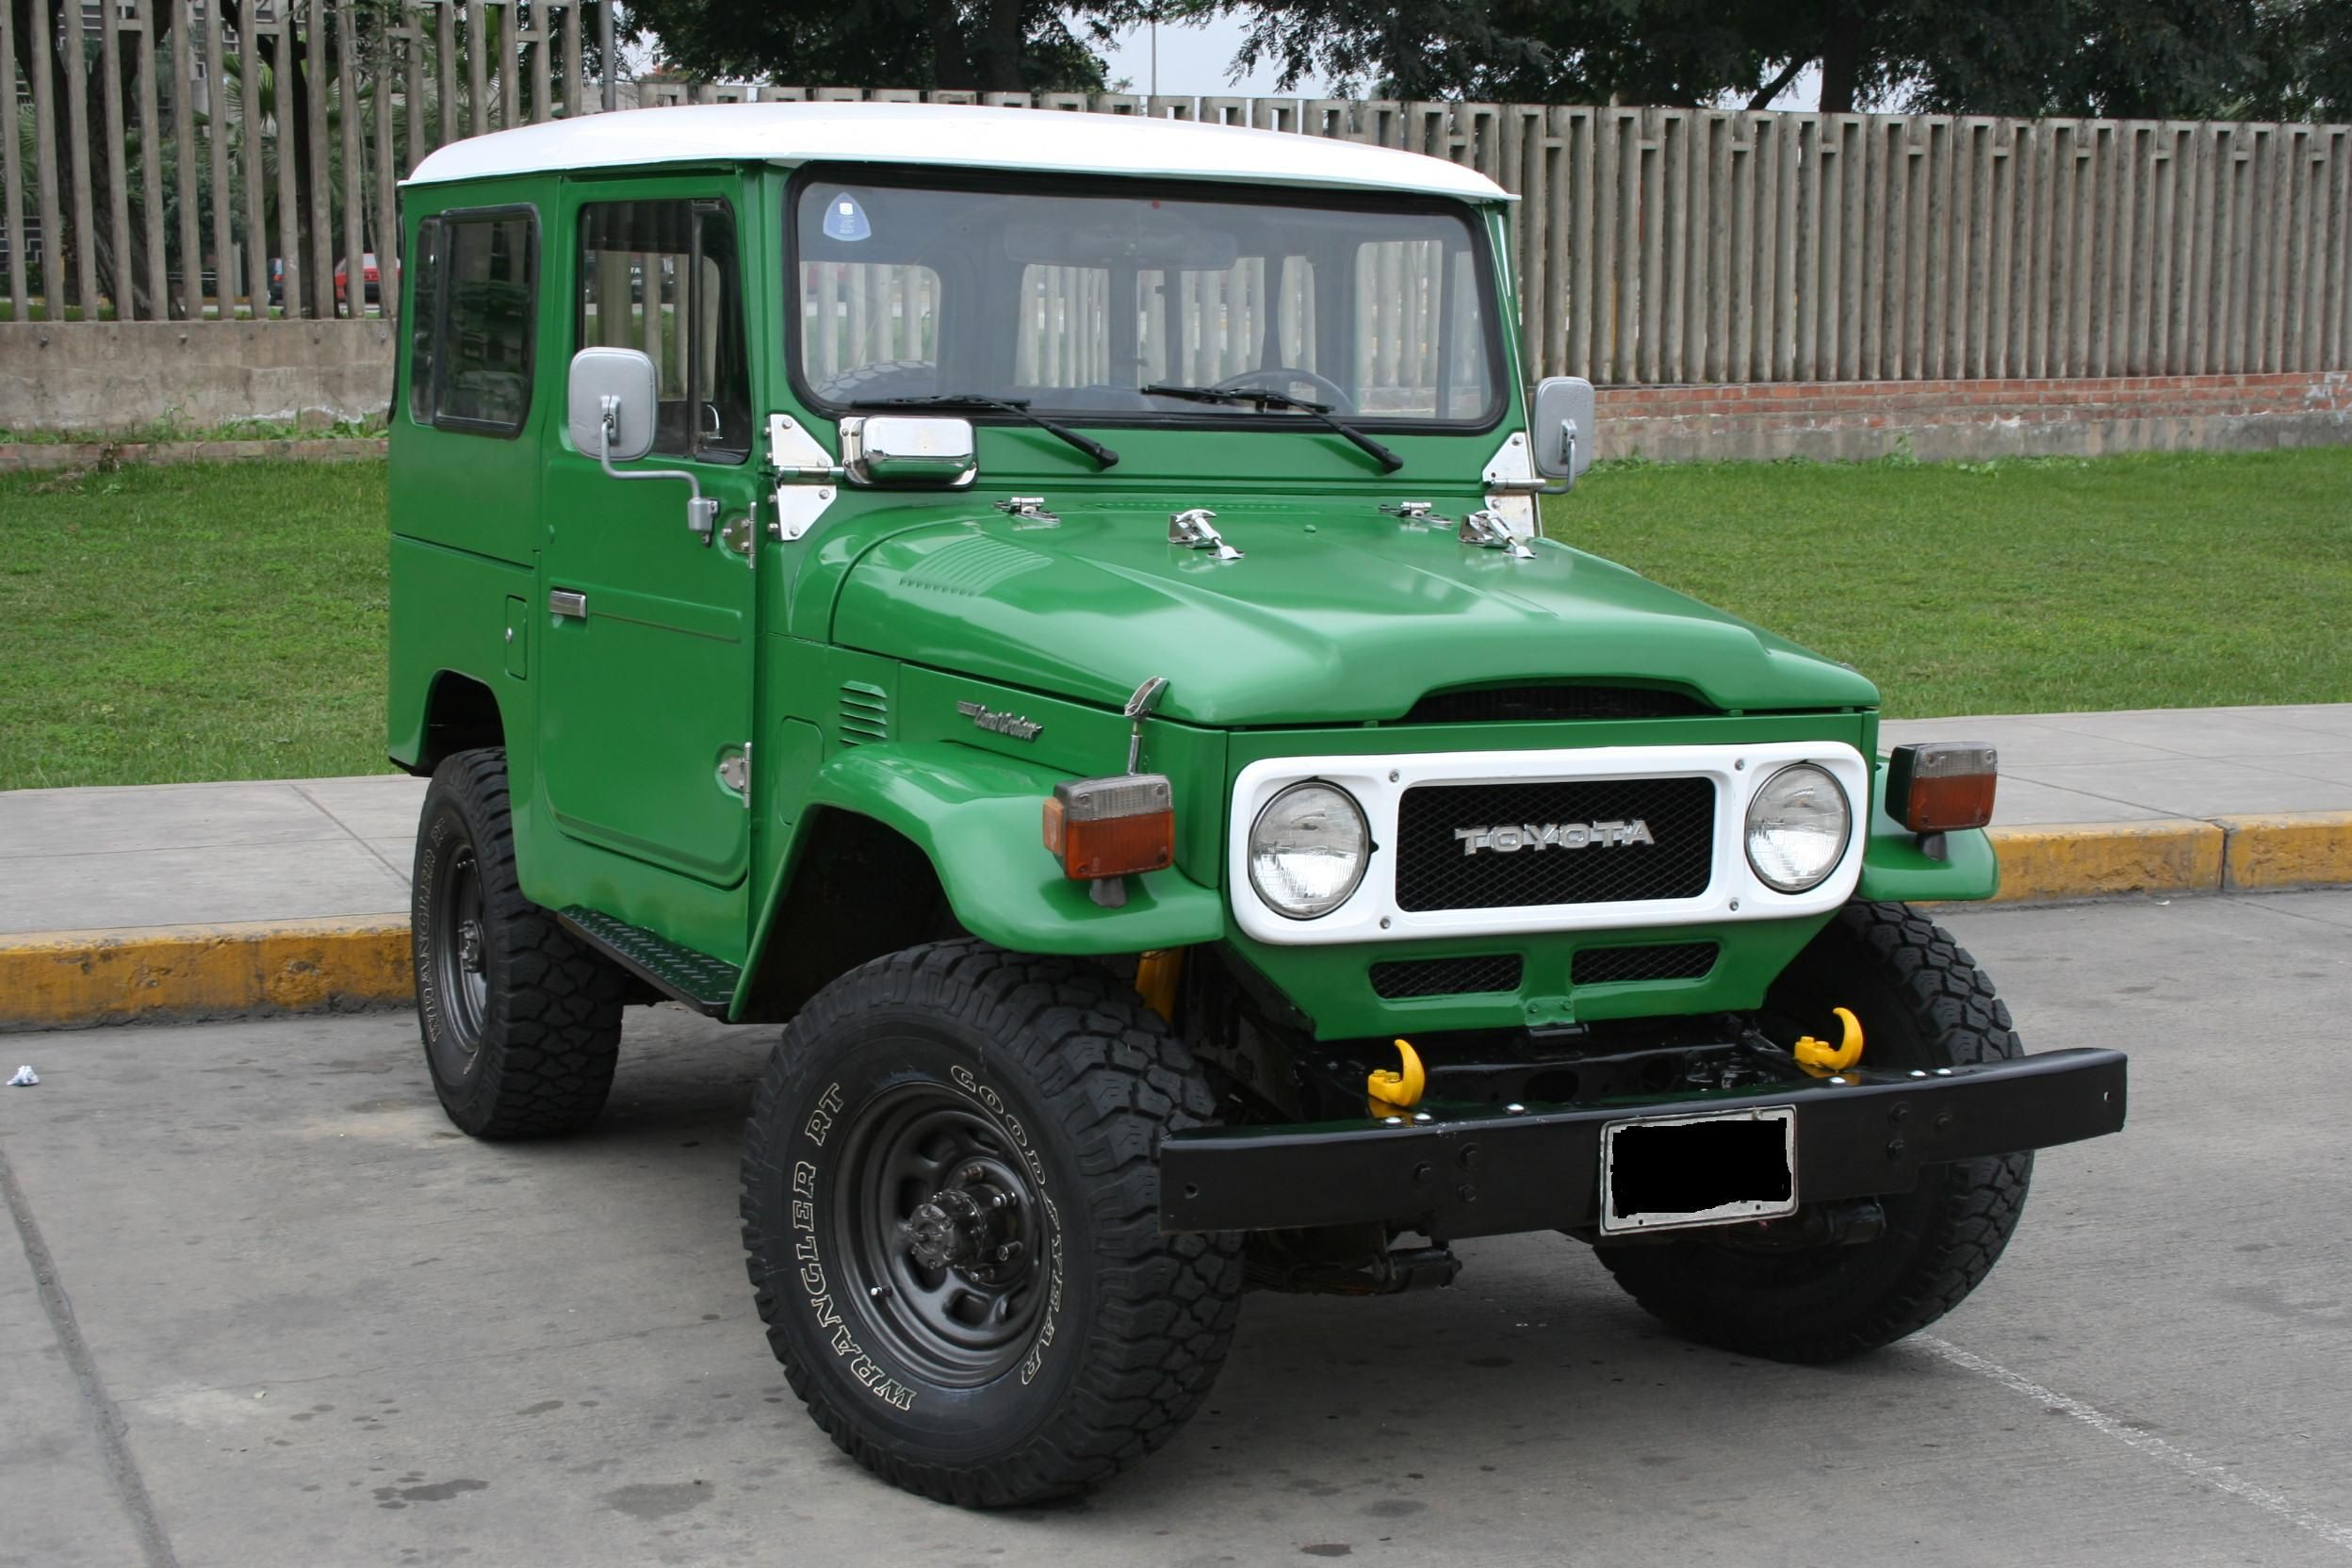 Toyota Land Cruiser Fj40 Vendo Toyota Land Cruiser Fj40 Img 5822